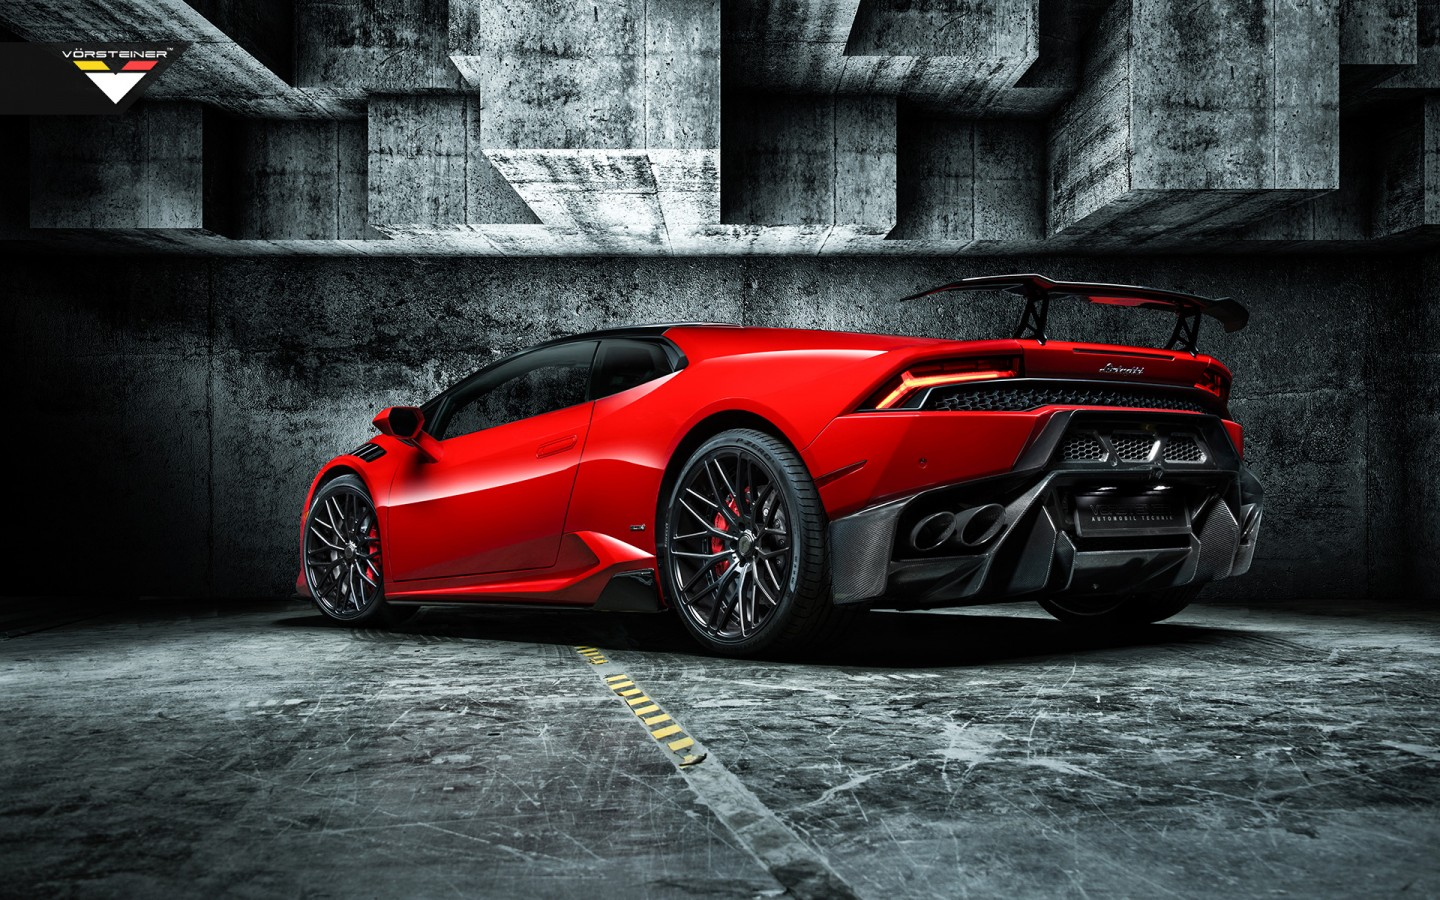 2016 rosso mars novara edizione lamborghini huracan 3. Black Bedroom Furniture Sets. Home Design Ideas